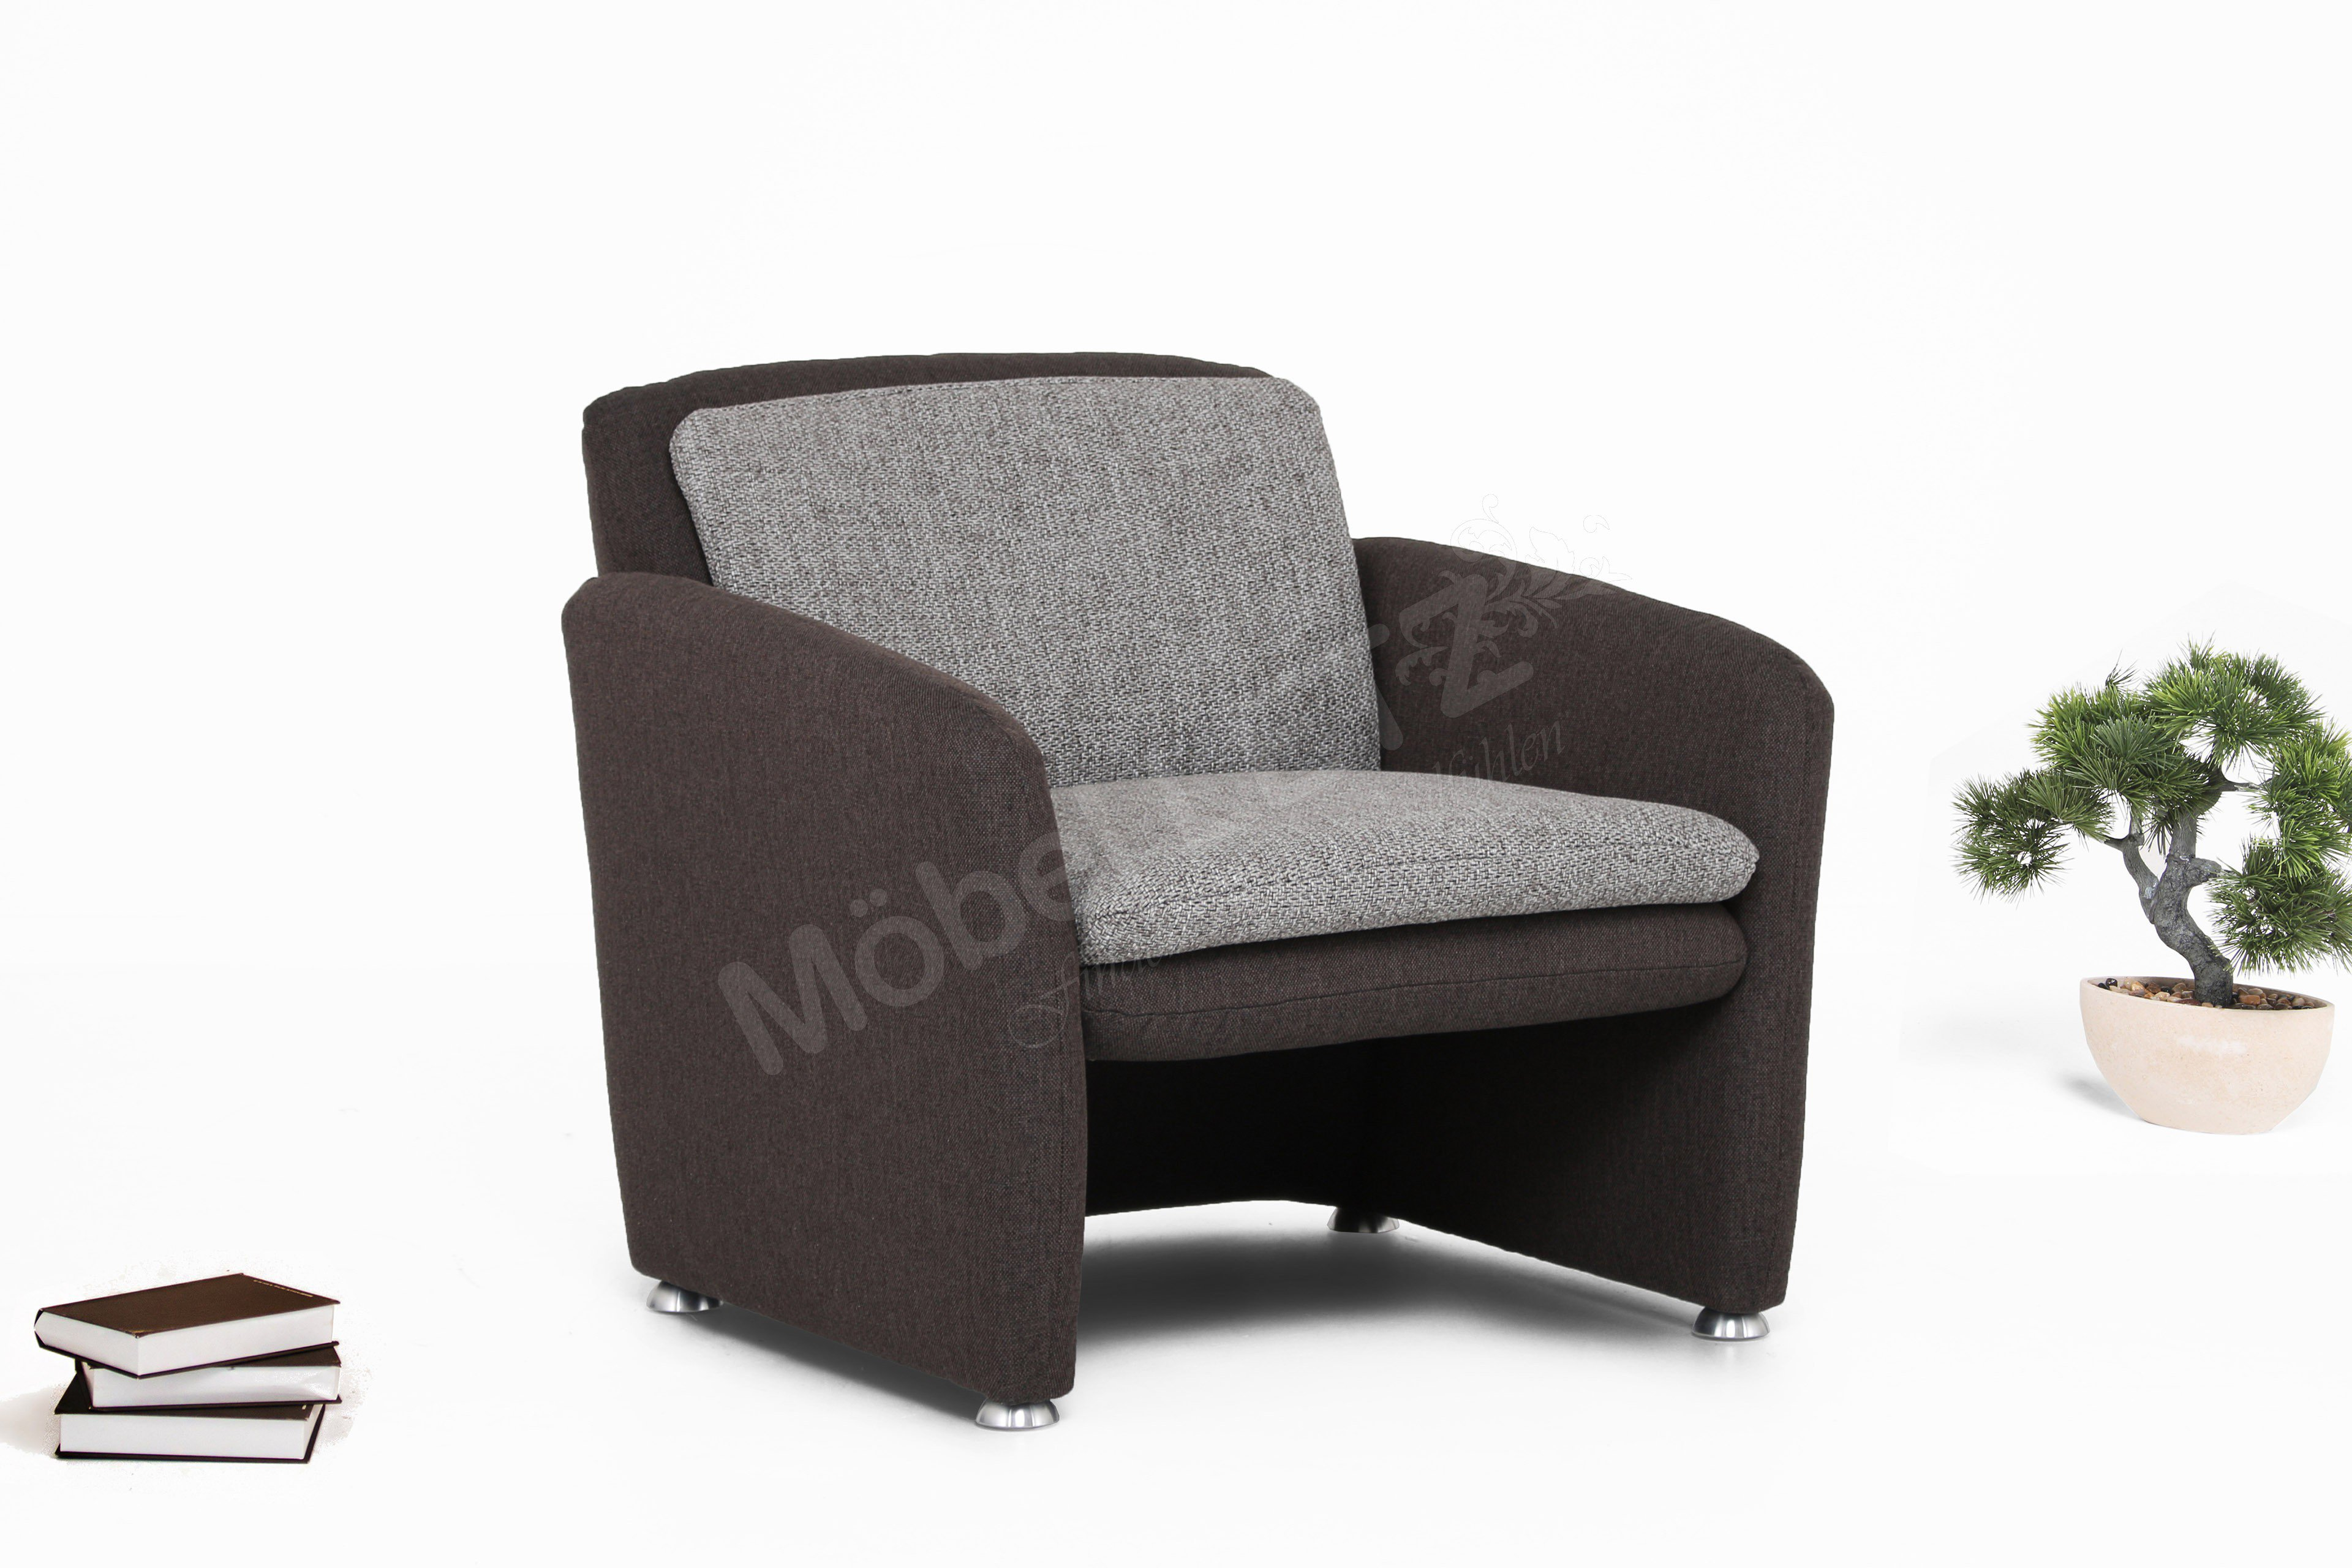 megapol enzo sessel in braun grau m bel letz ihr online shop. Black Bedroom Furniture Sets. Home Design Ideas